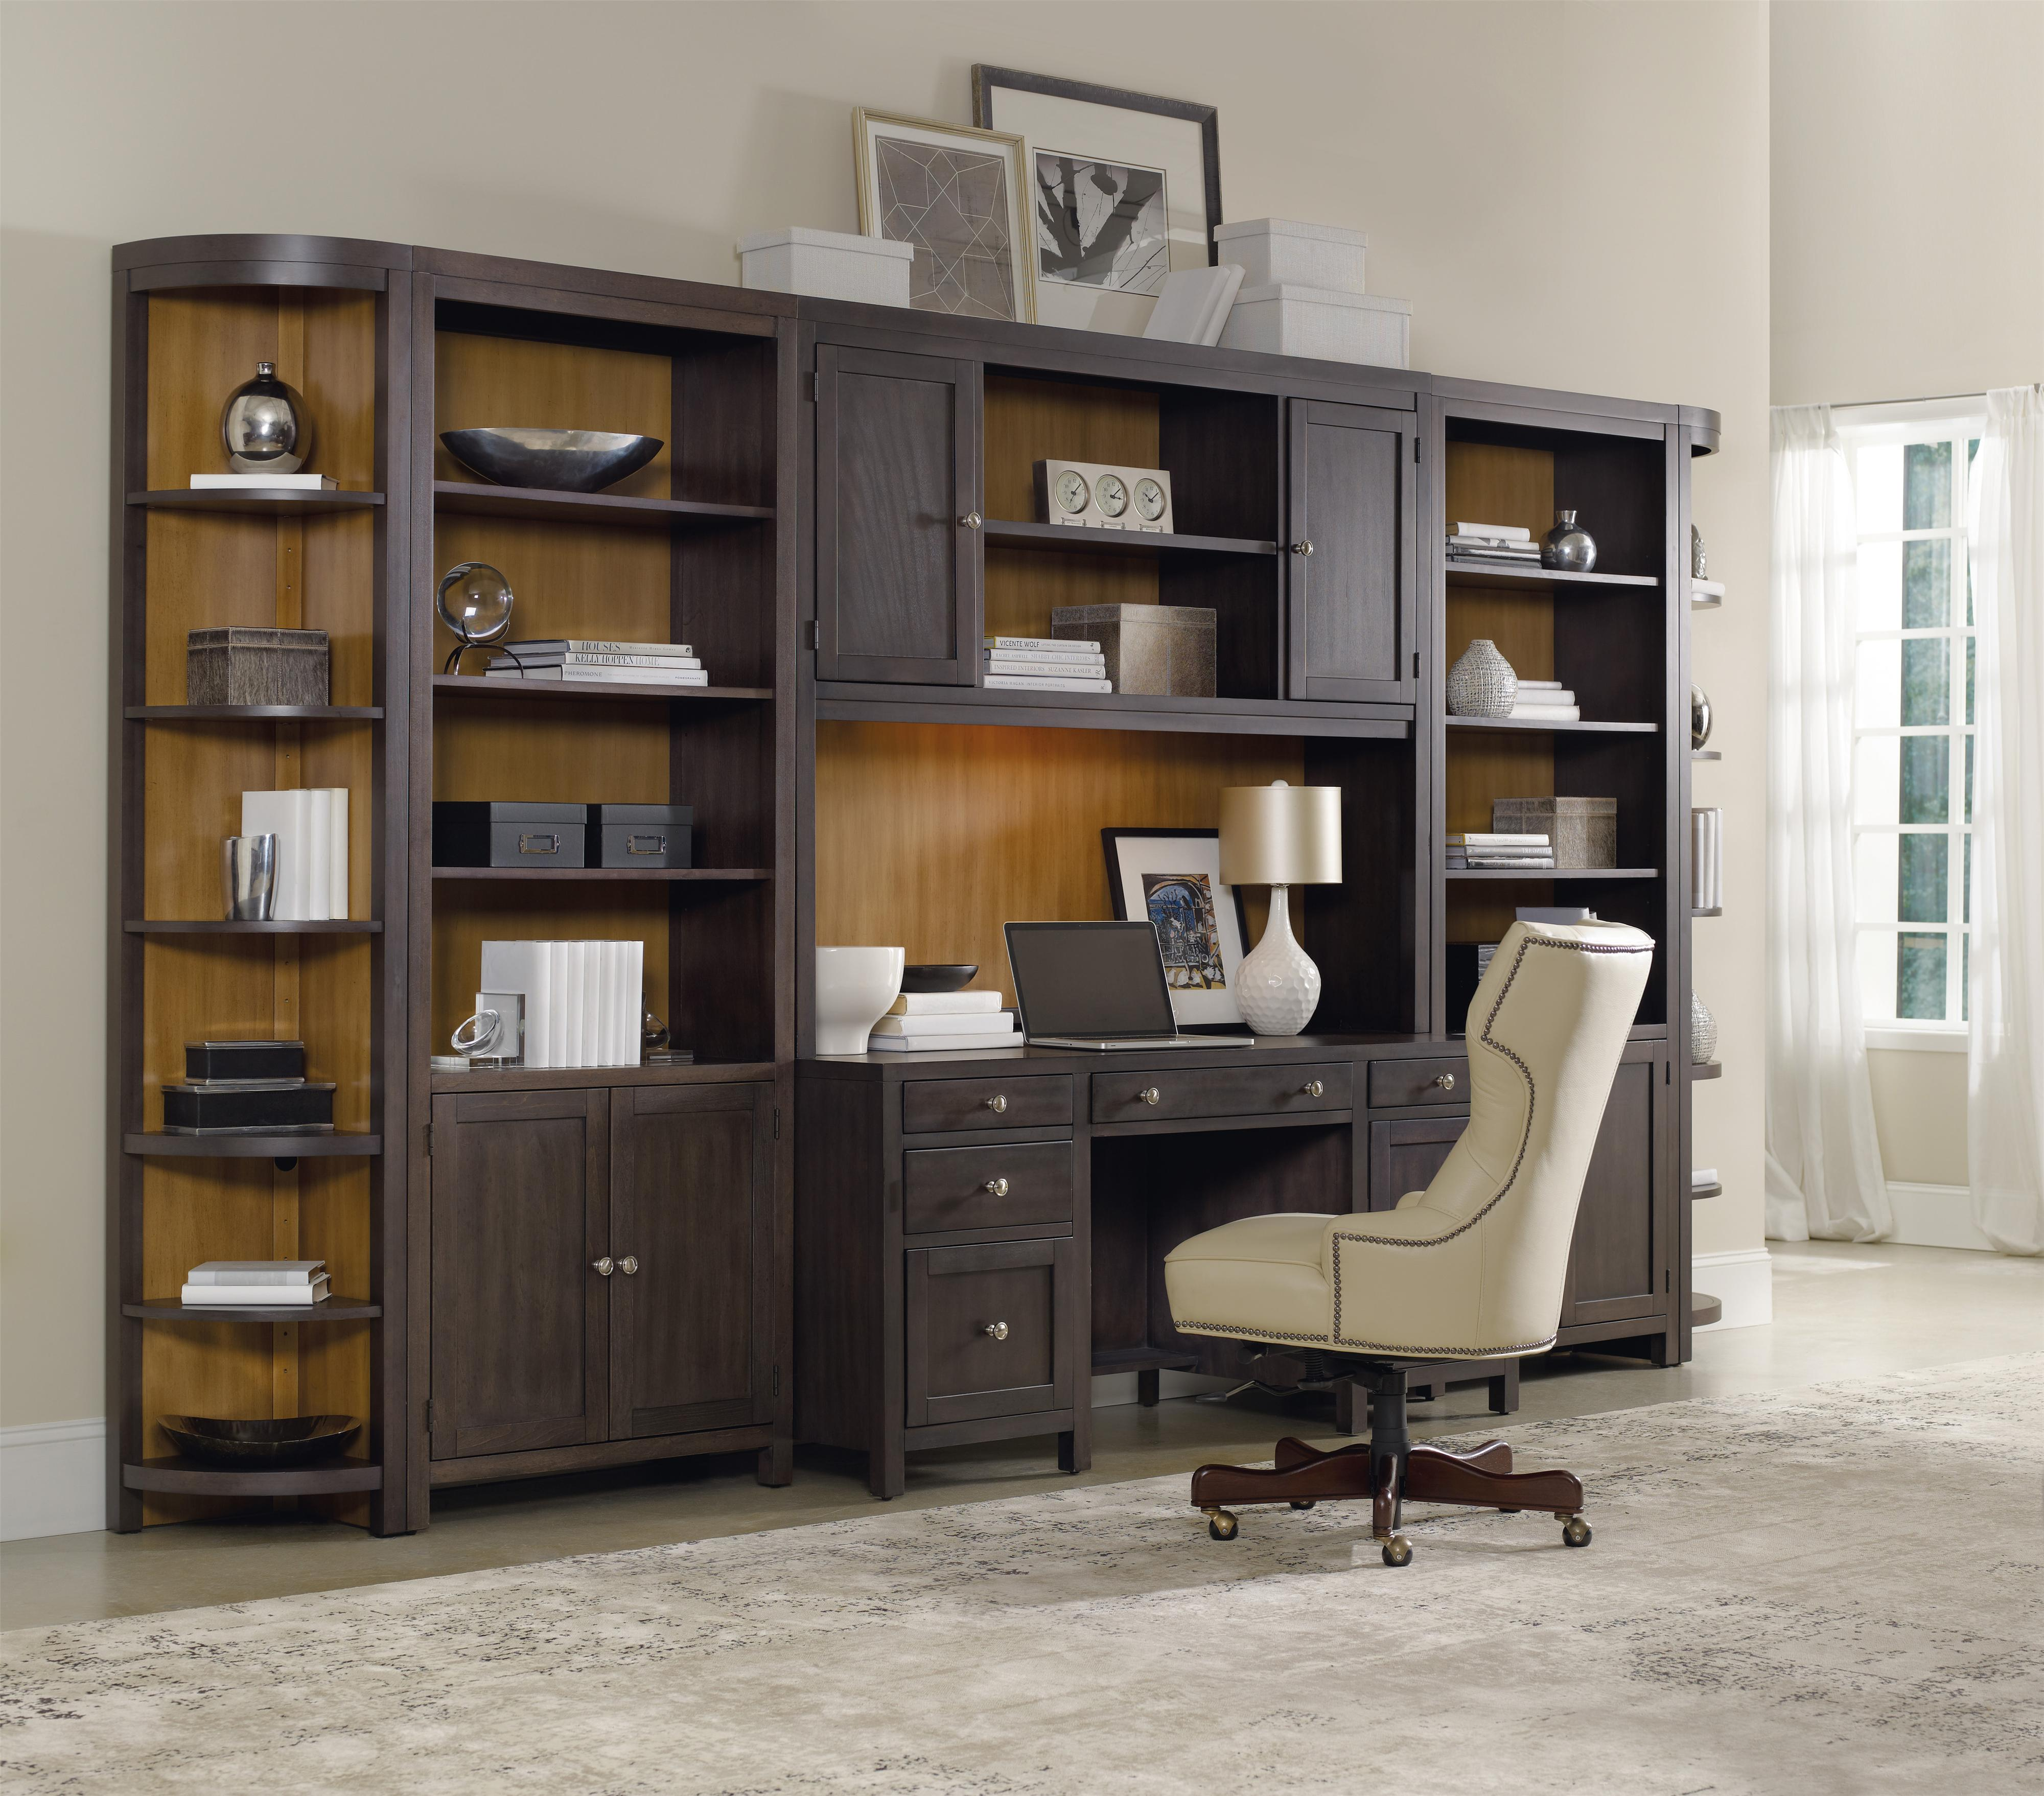 Hooker Furniture South Park Bunching Bookcase With 3